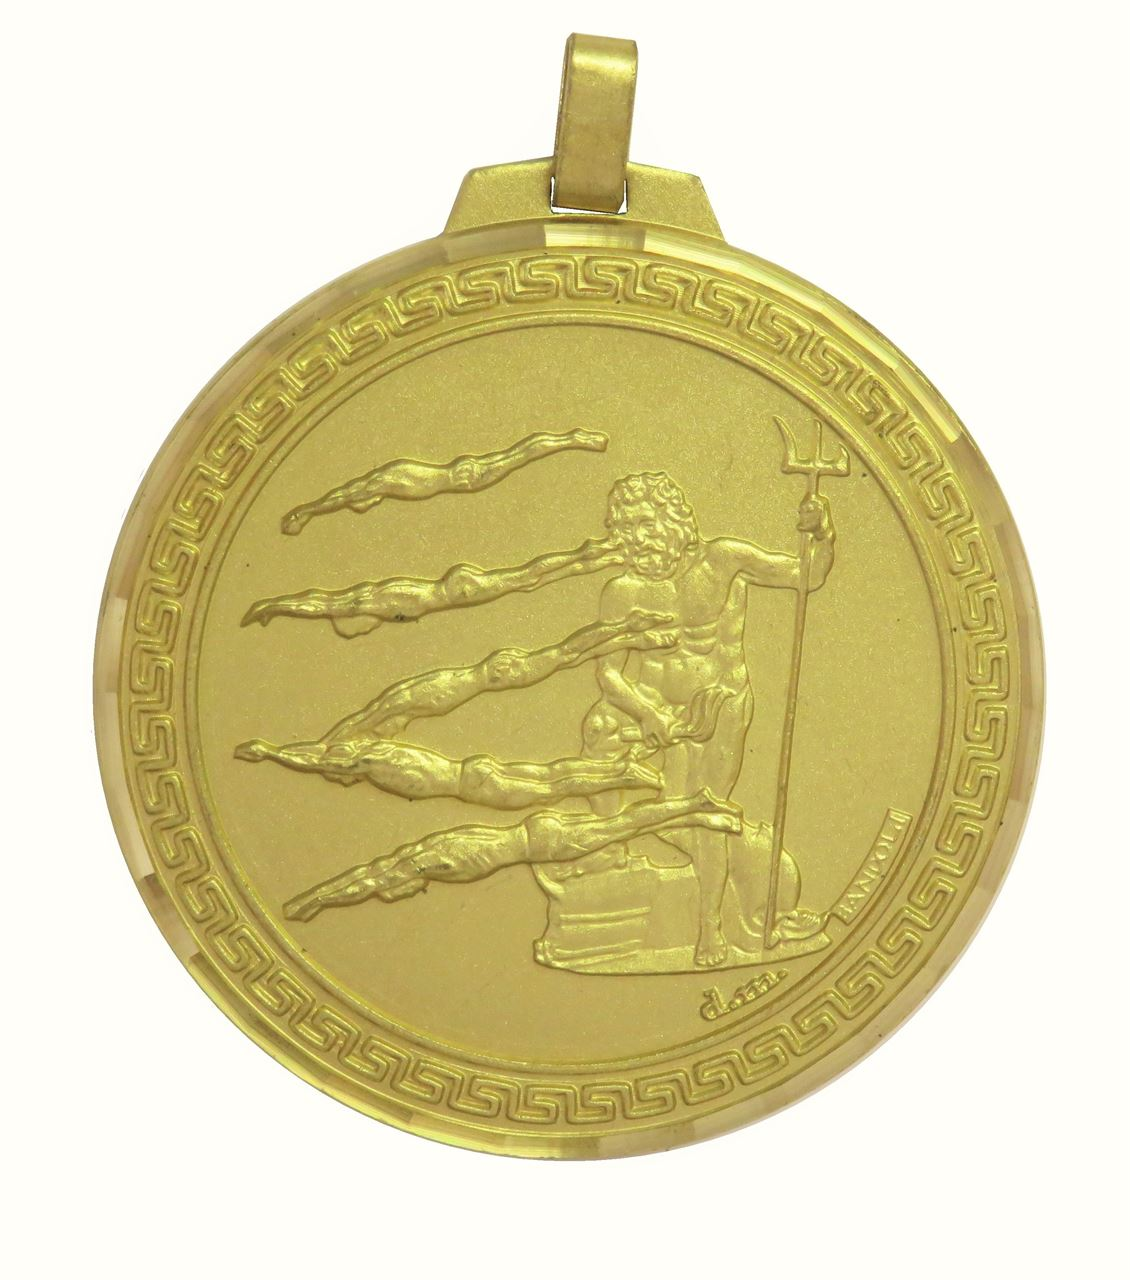 Gold Faceted Male Swimming Medal (size: 70mm) - 248F